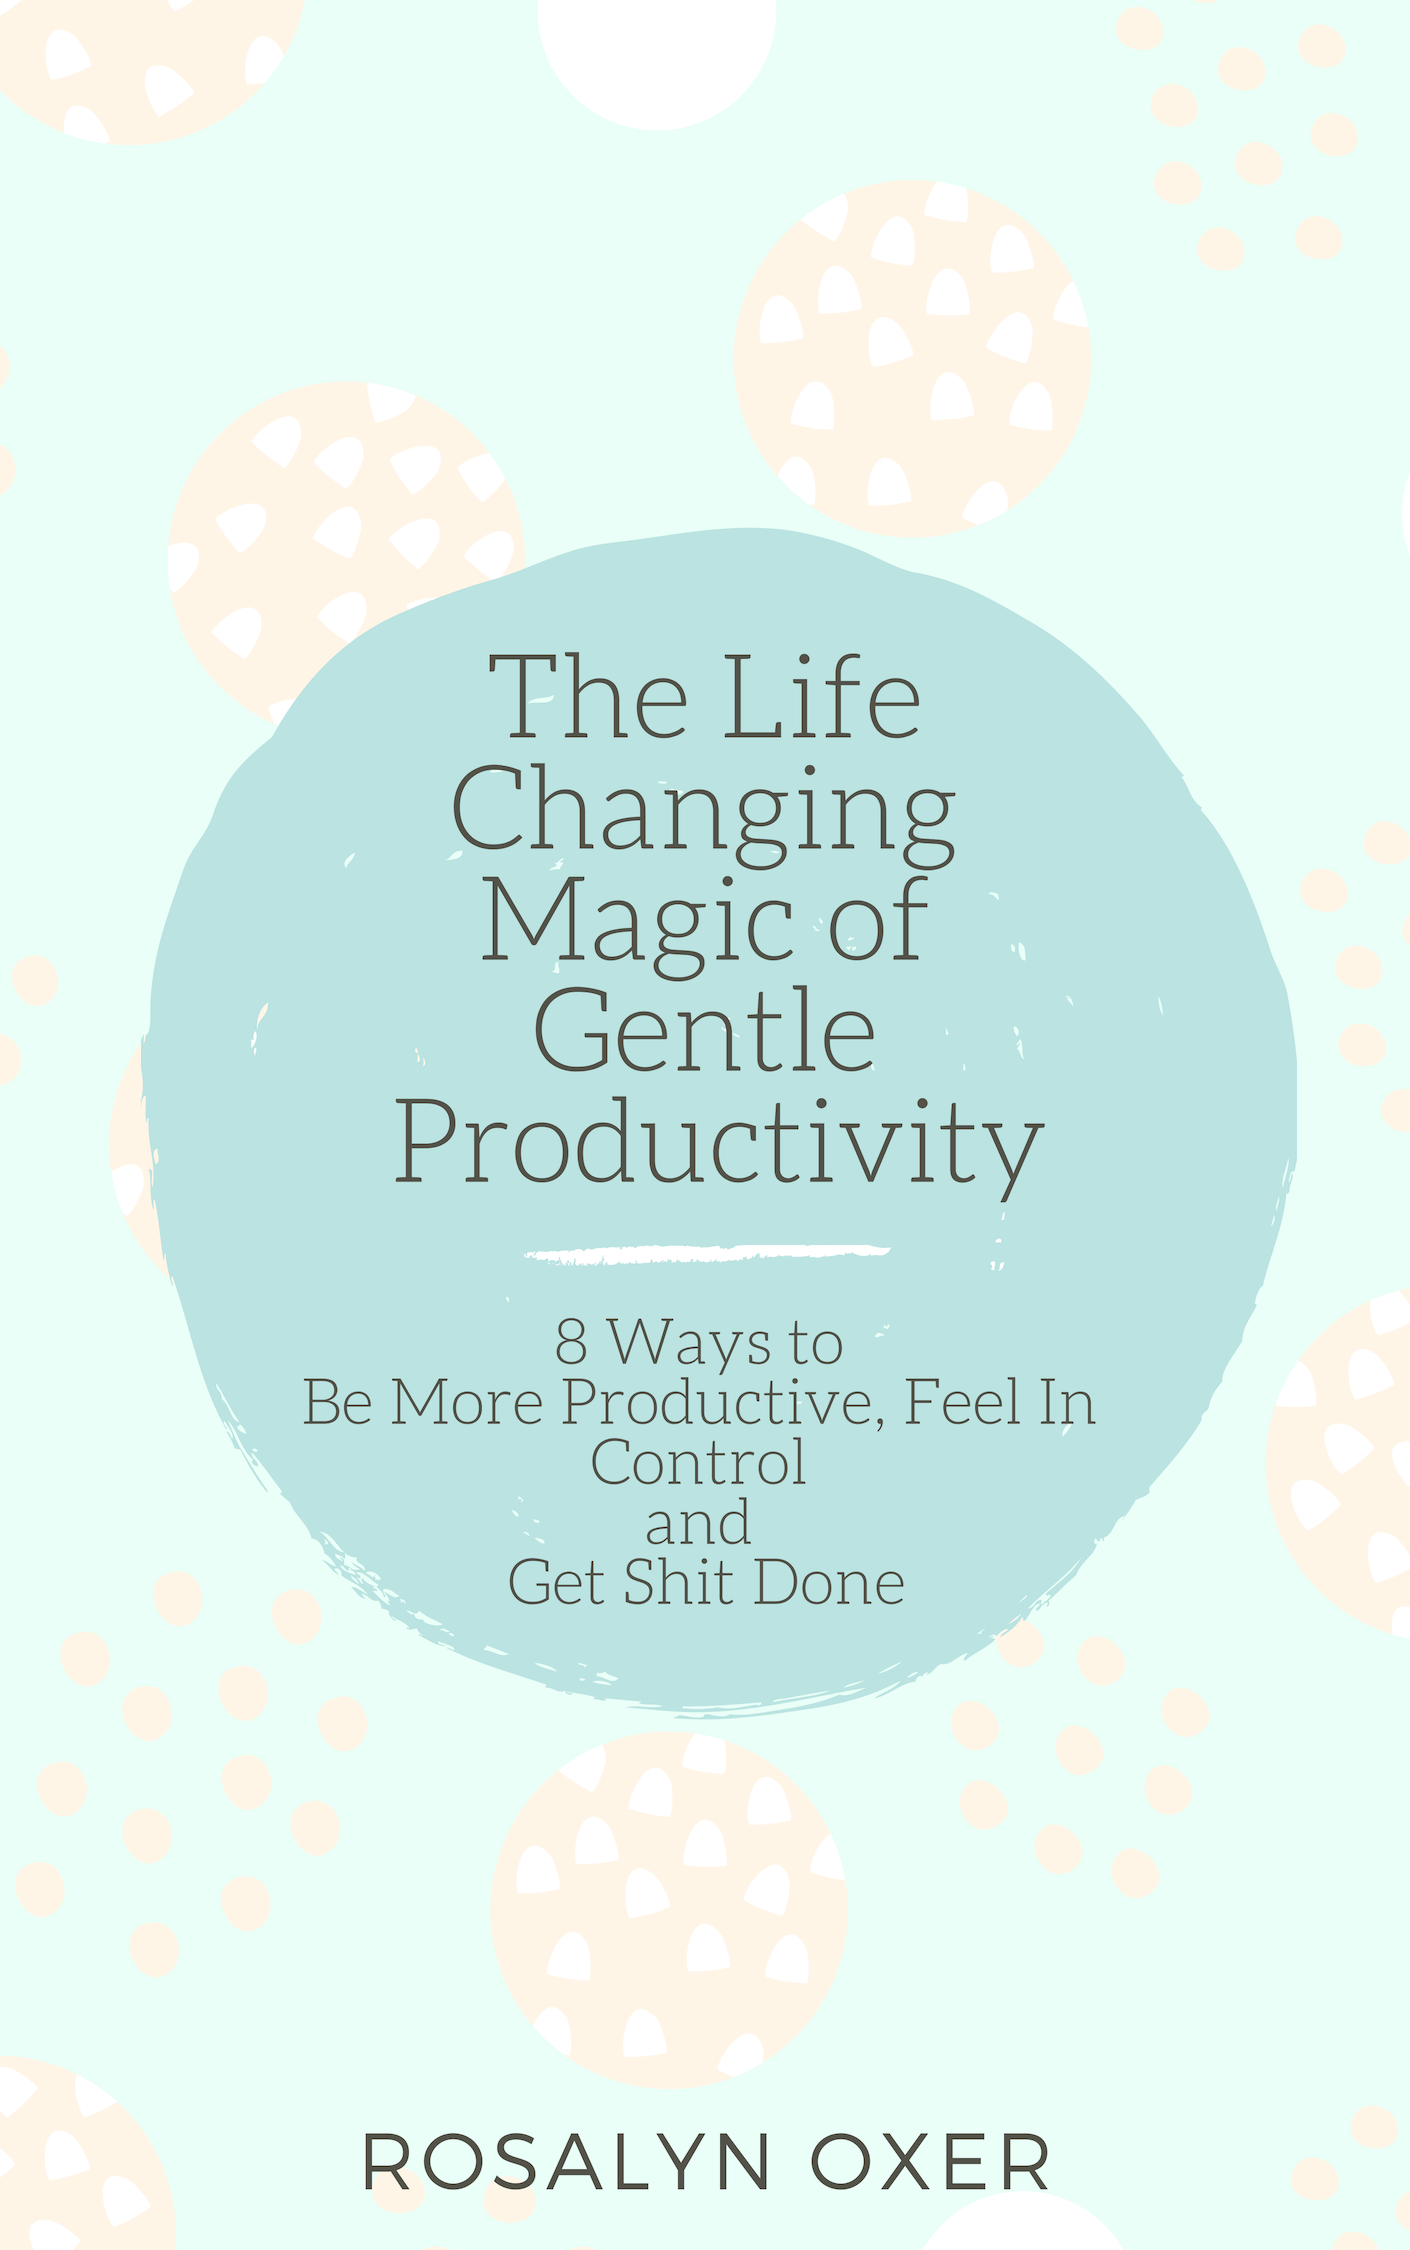 The Life Changing Magic of Gentle Productivity (1).png